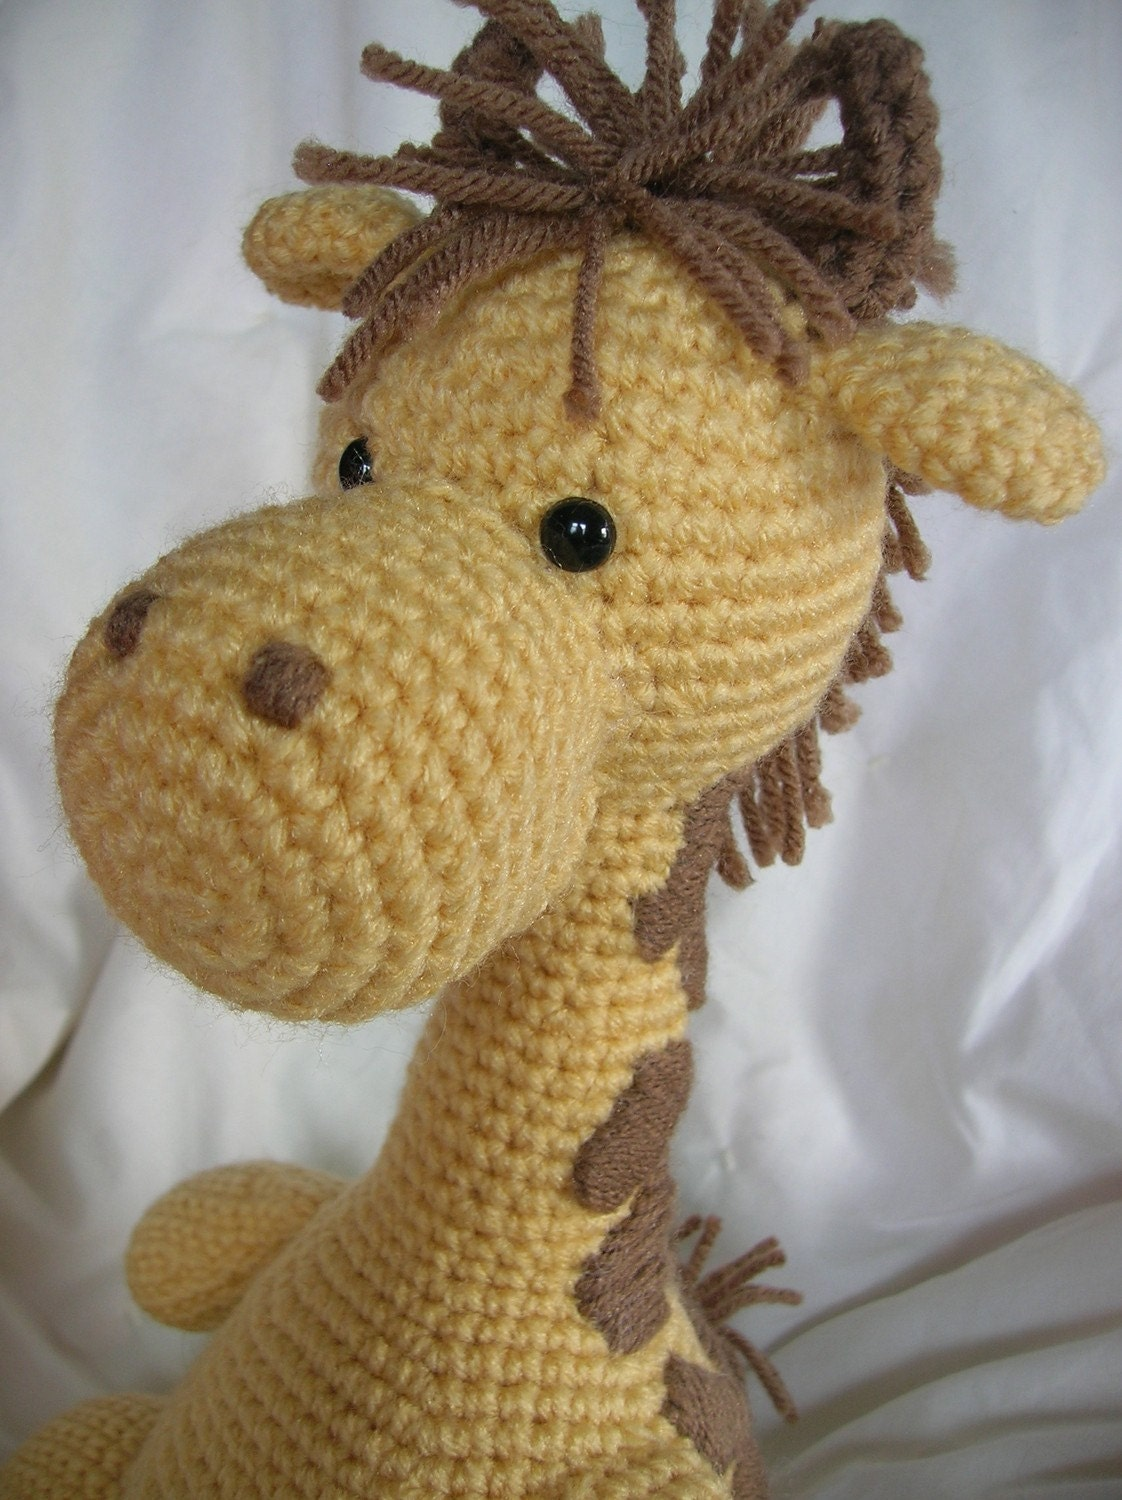 1500 Free Amigurumi Patterns: Giraffe - Free animal crochet pattern